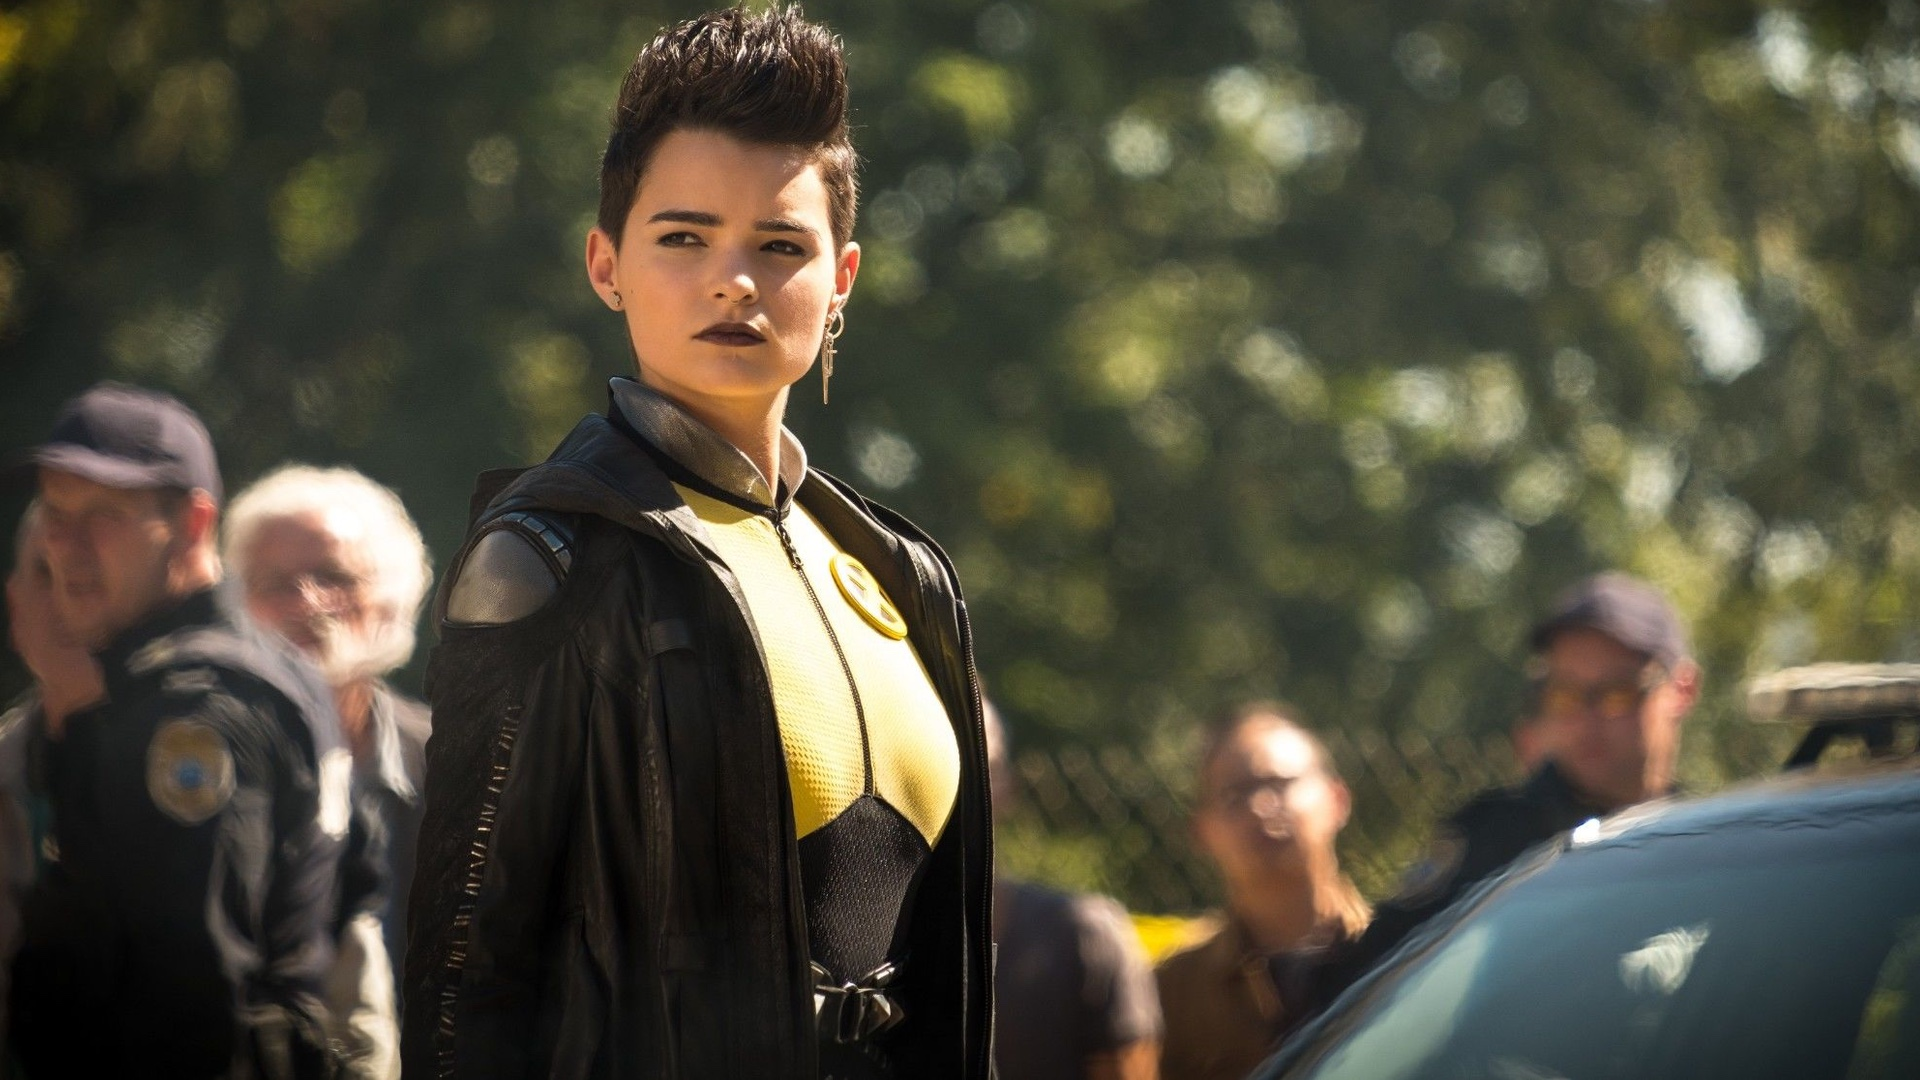 Deadpools Brianna Hildebrand To Star In Netflixs Adaptation Of